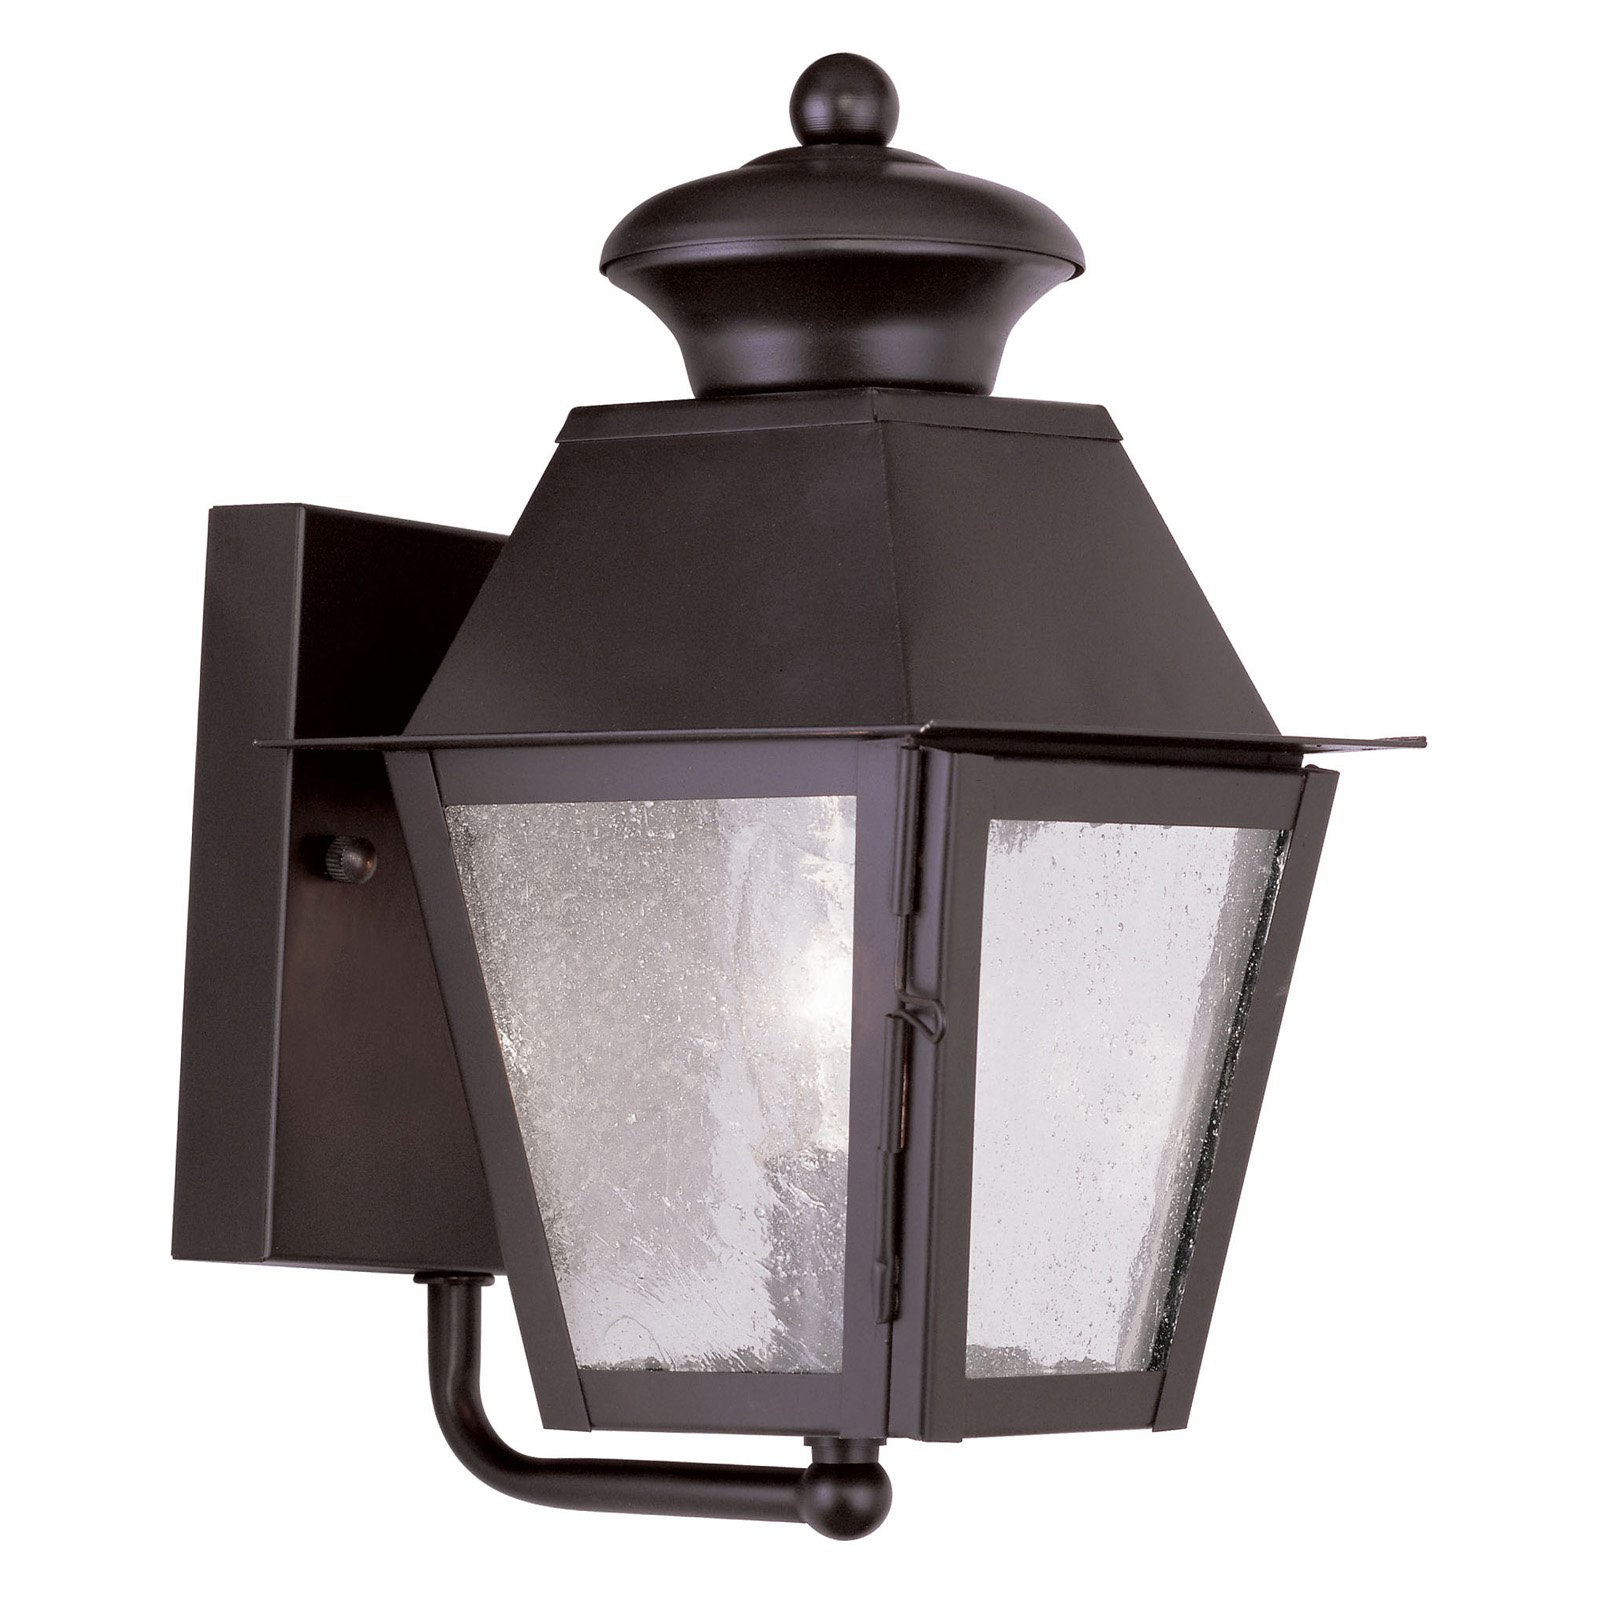 Livex Mansfield 2160-07 1-Light Outdoor Wall Lantern in Bronze